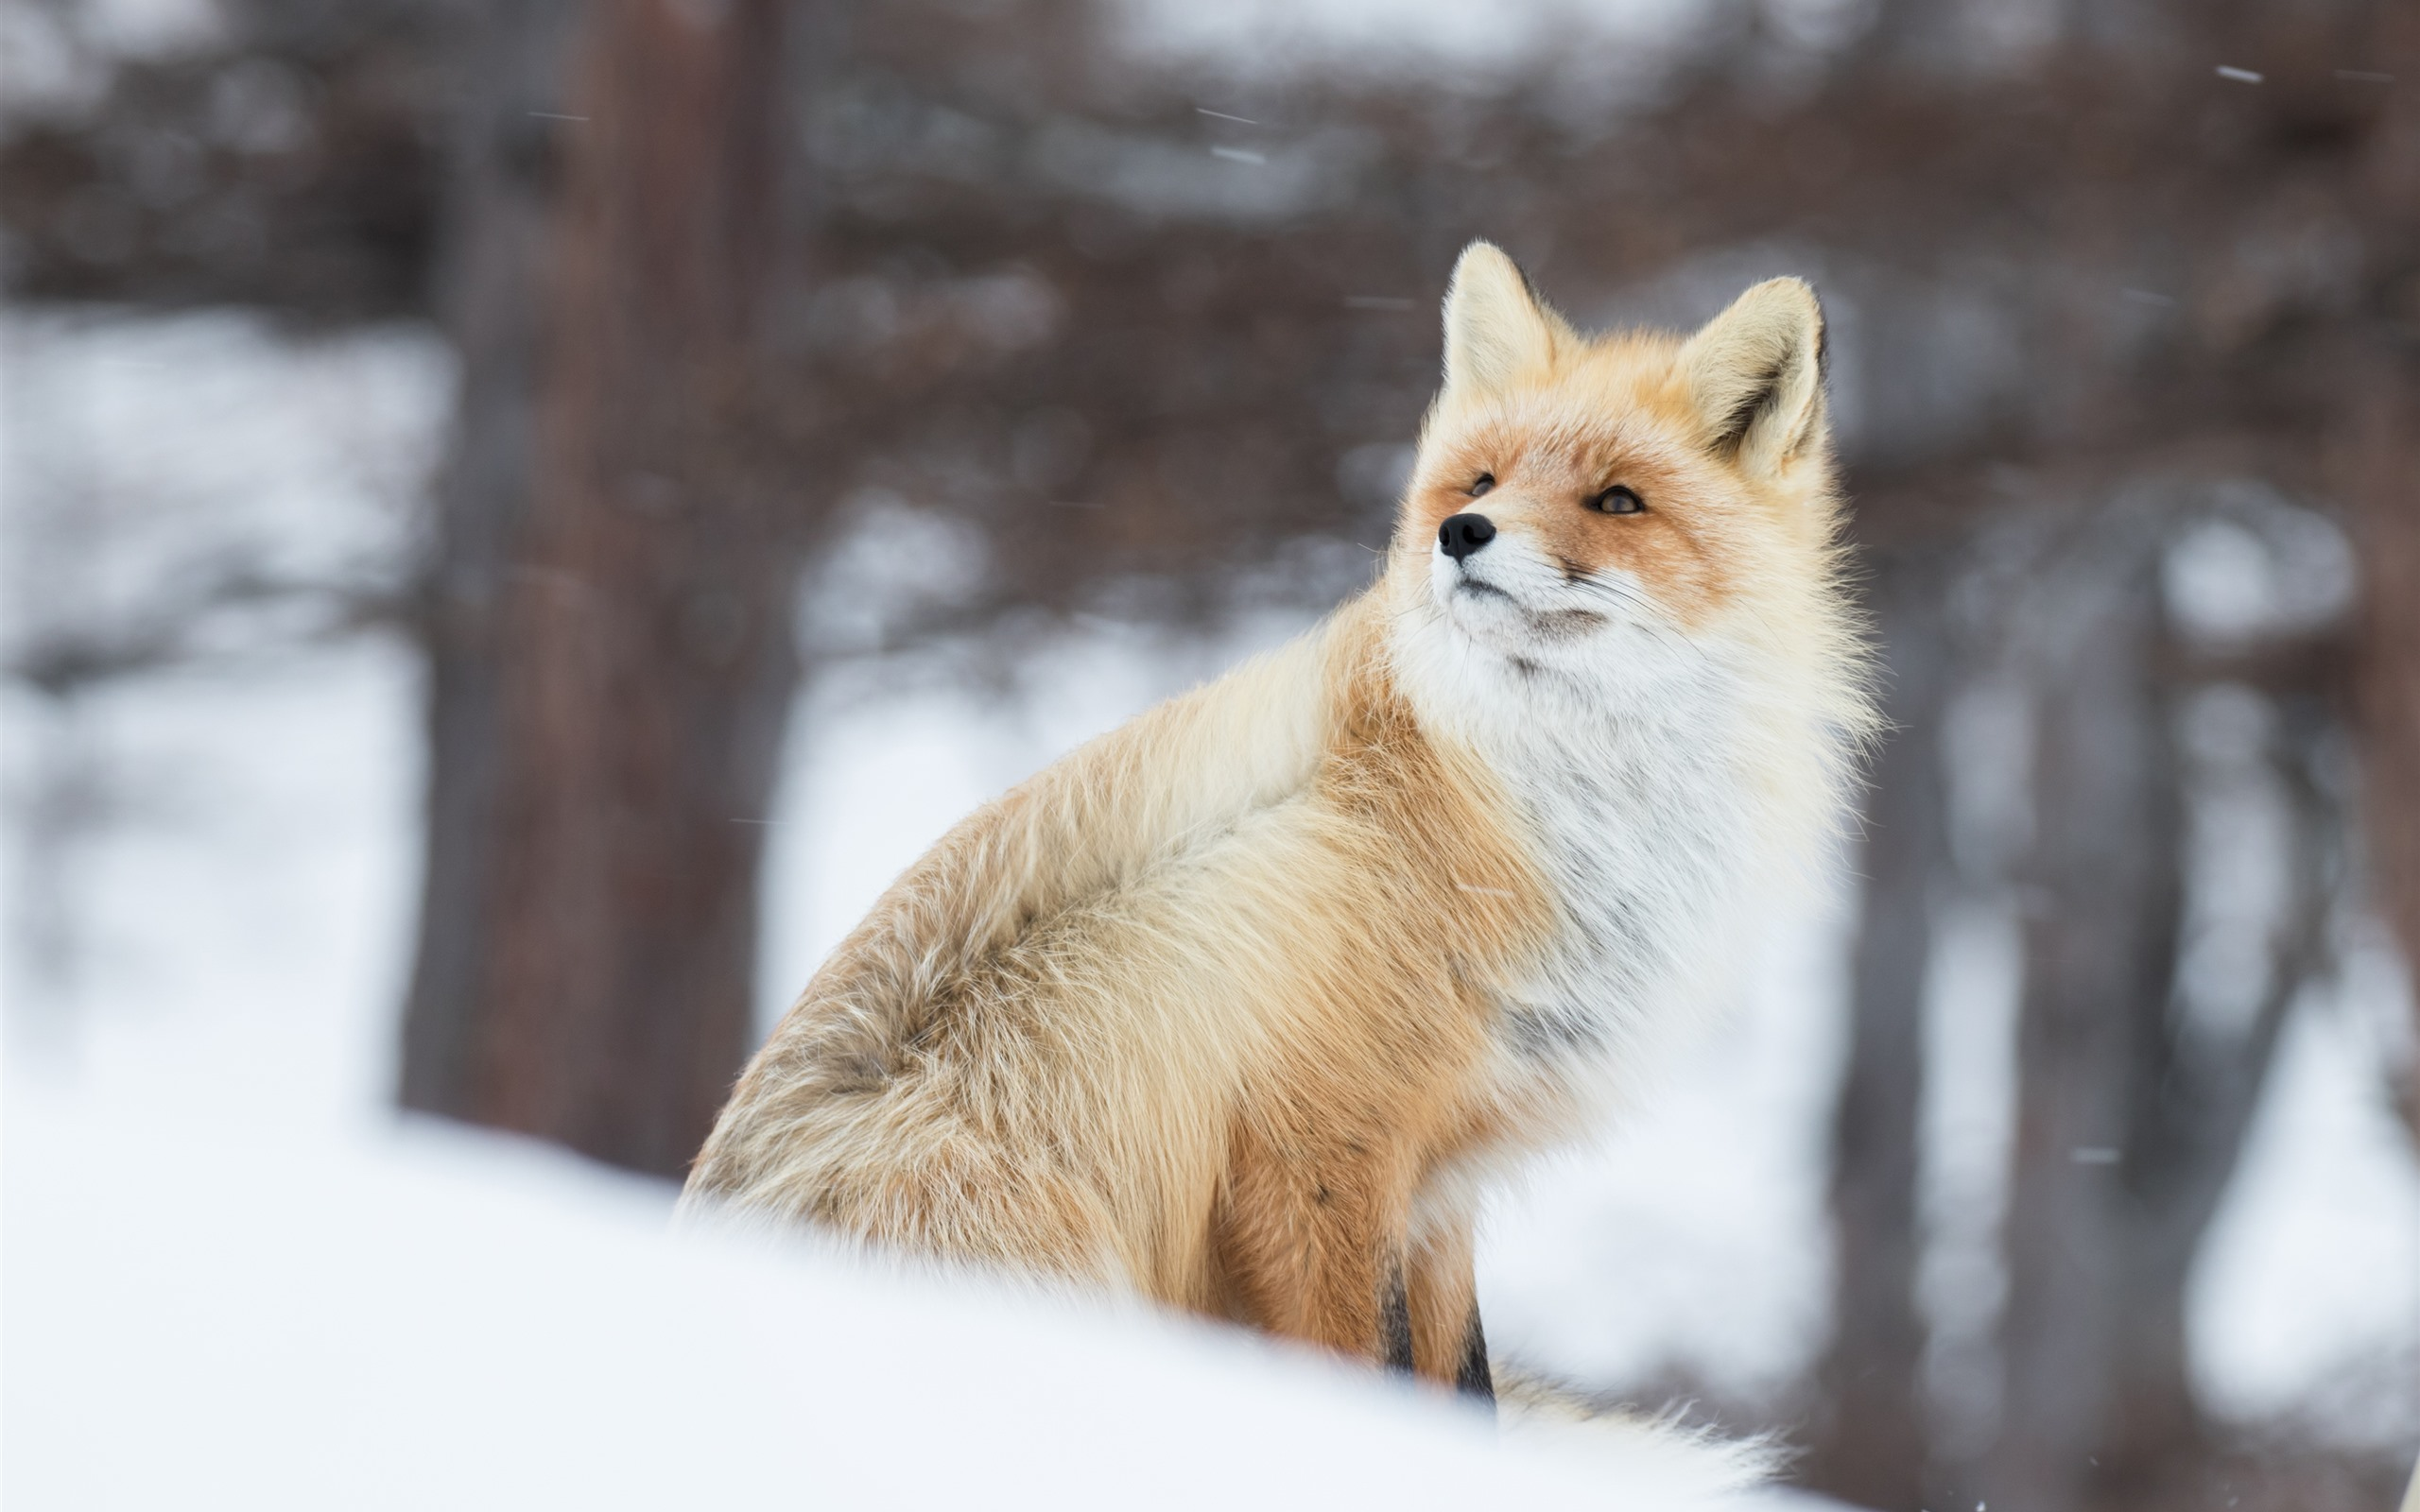 Cute Wallpapers For Iphone 5c Wallpaper Animal In Winter Fox Snow 3840x2160 Uhd 4k